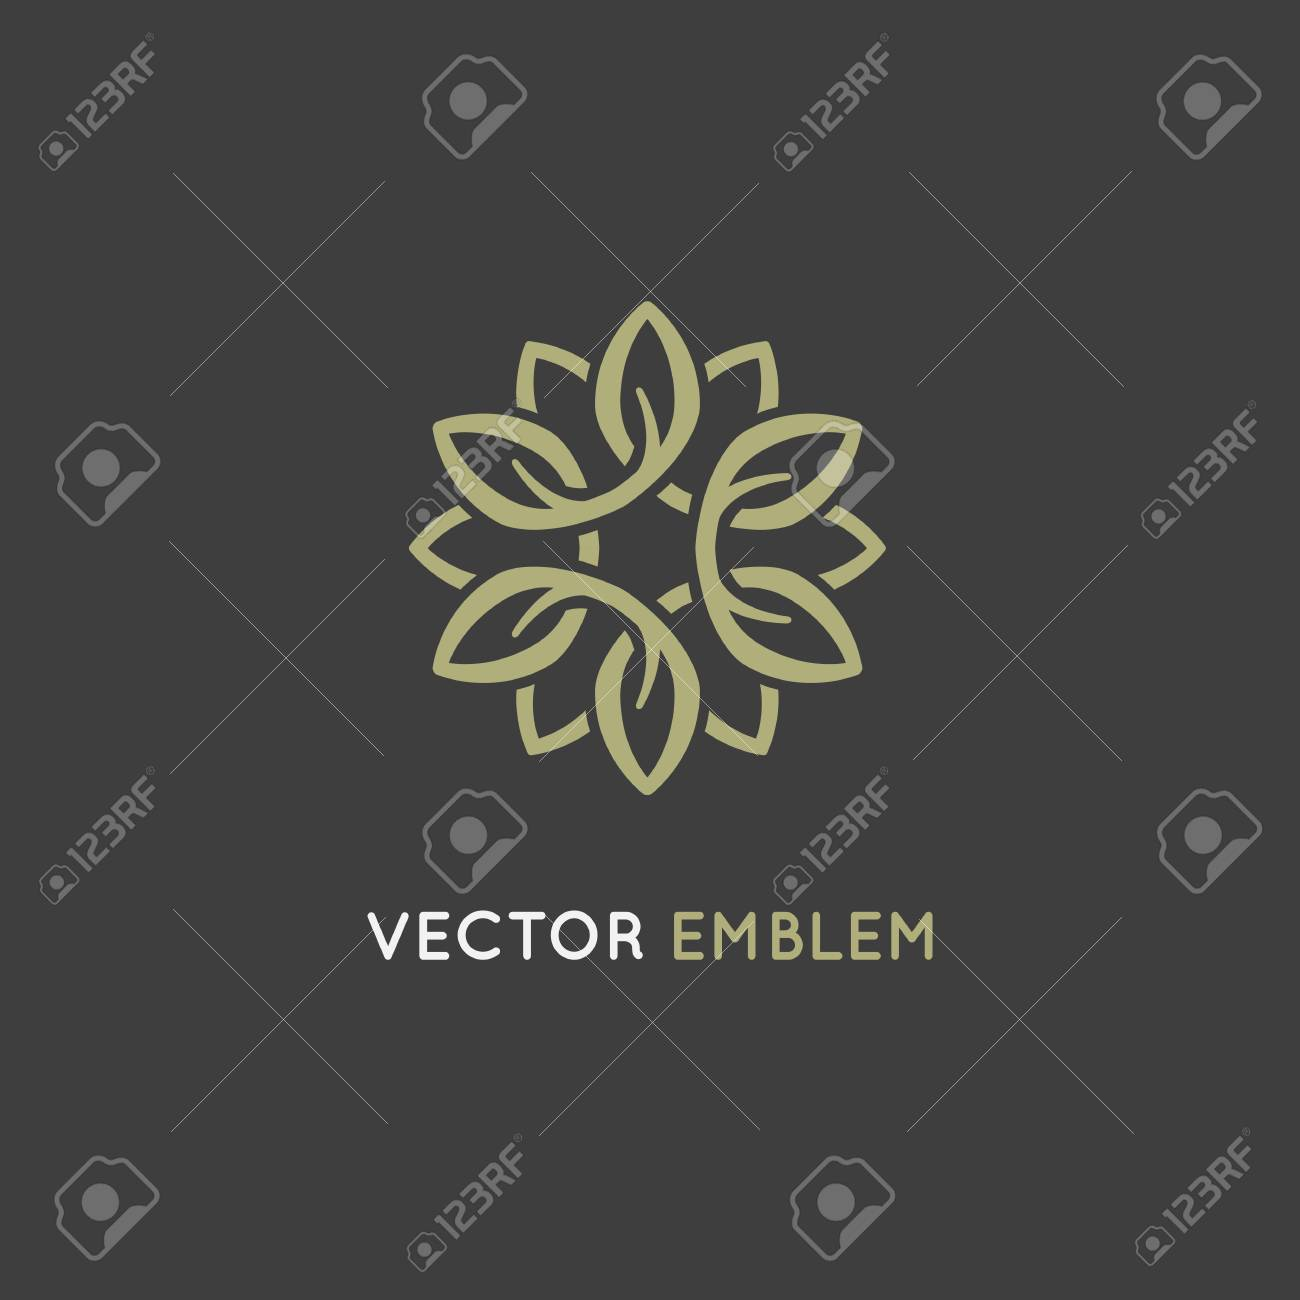 Vector logo design template and emblem made with infinite lines - luxury beauty spa concept - badge for yoga studios, holistic medicine centers, natural and organic food products and packaging - 76520448